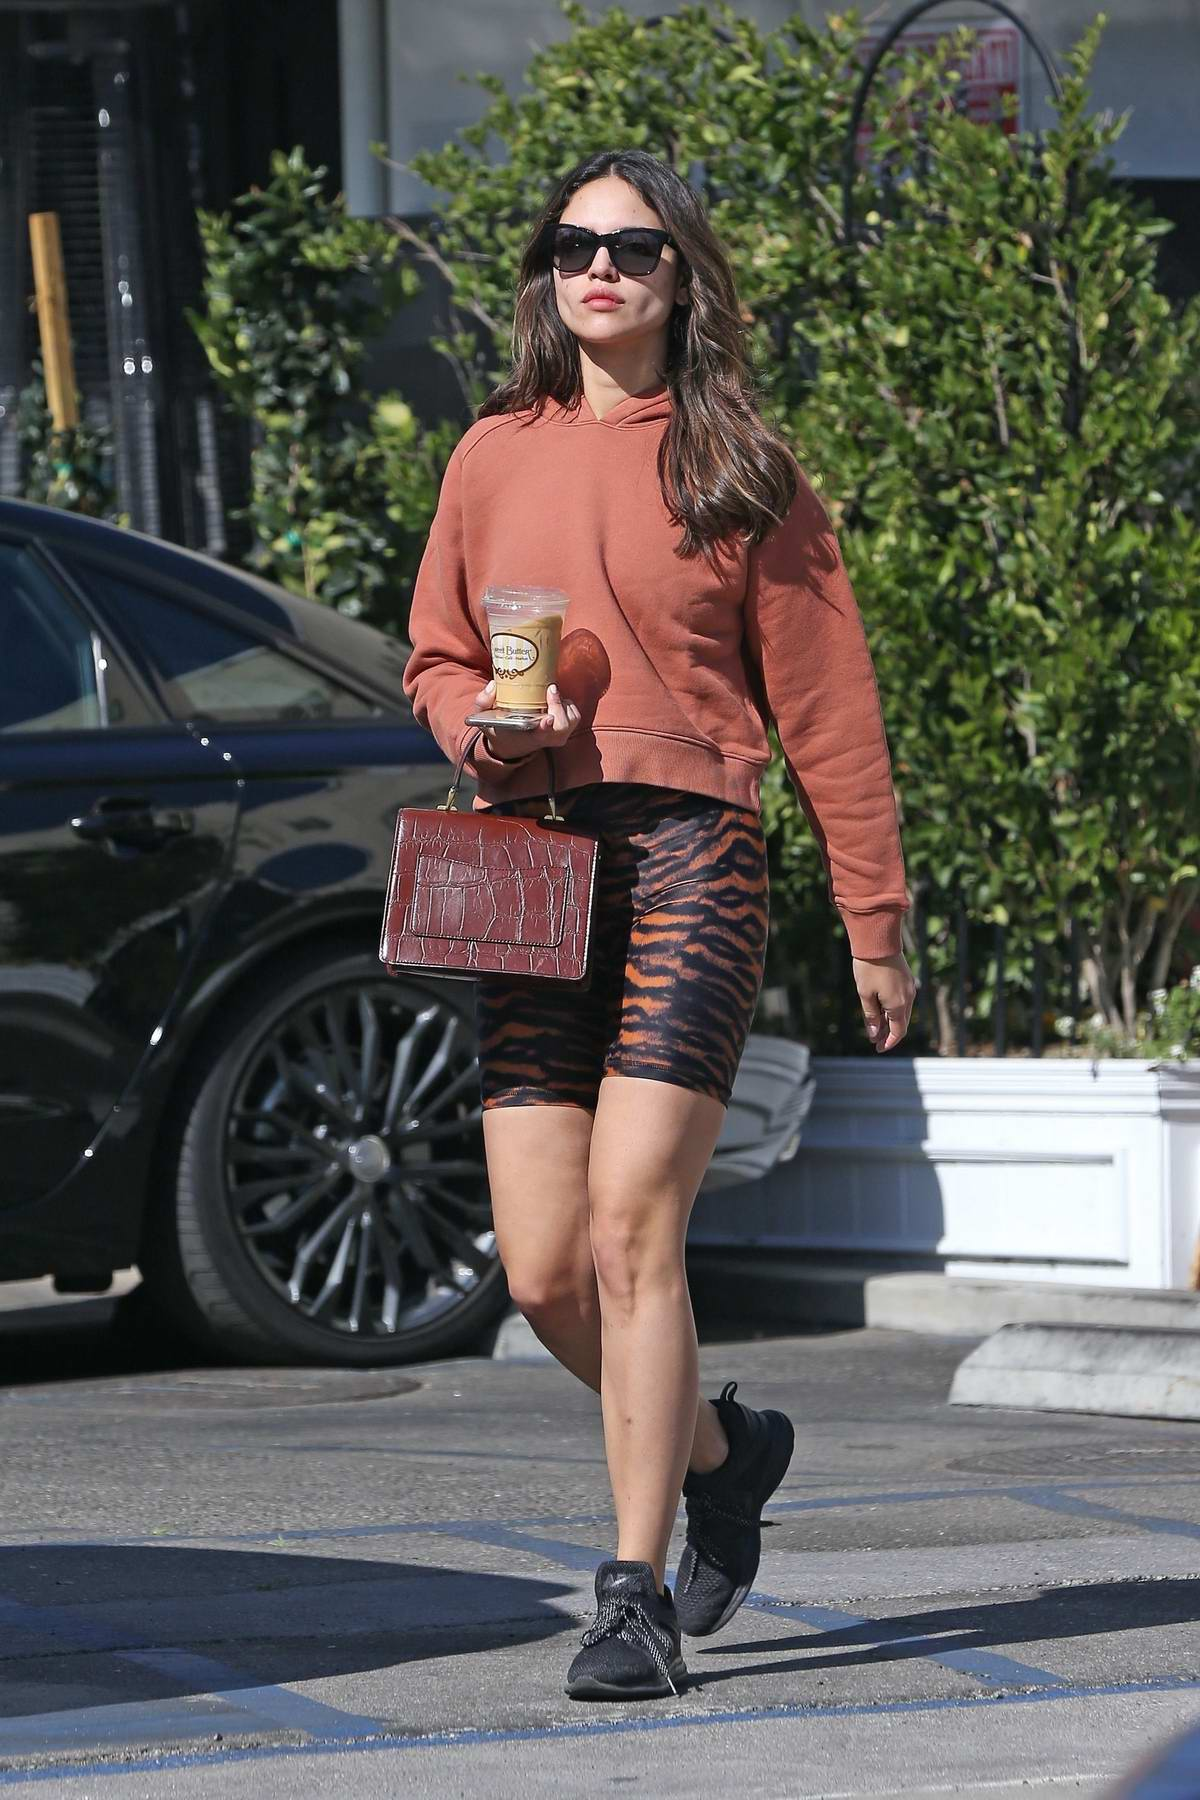 Eiza Gonzalez looks trendy in tiger stripes bike shorts while out grabbing food at Sweet Butter Kitchen in Studio City, California